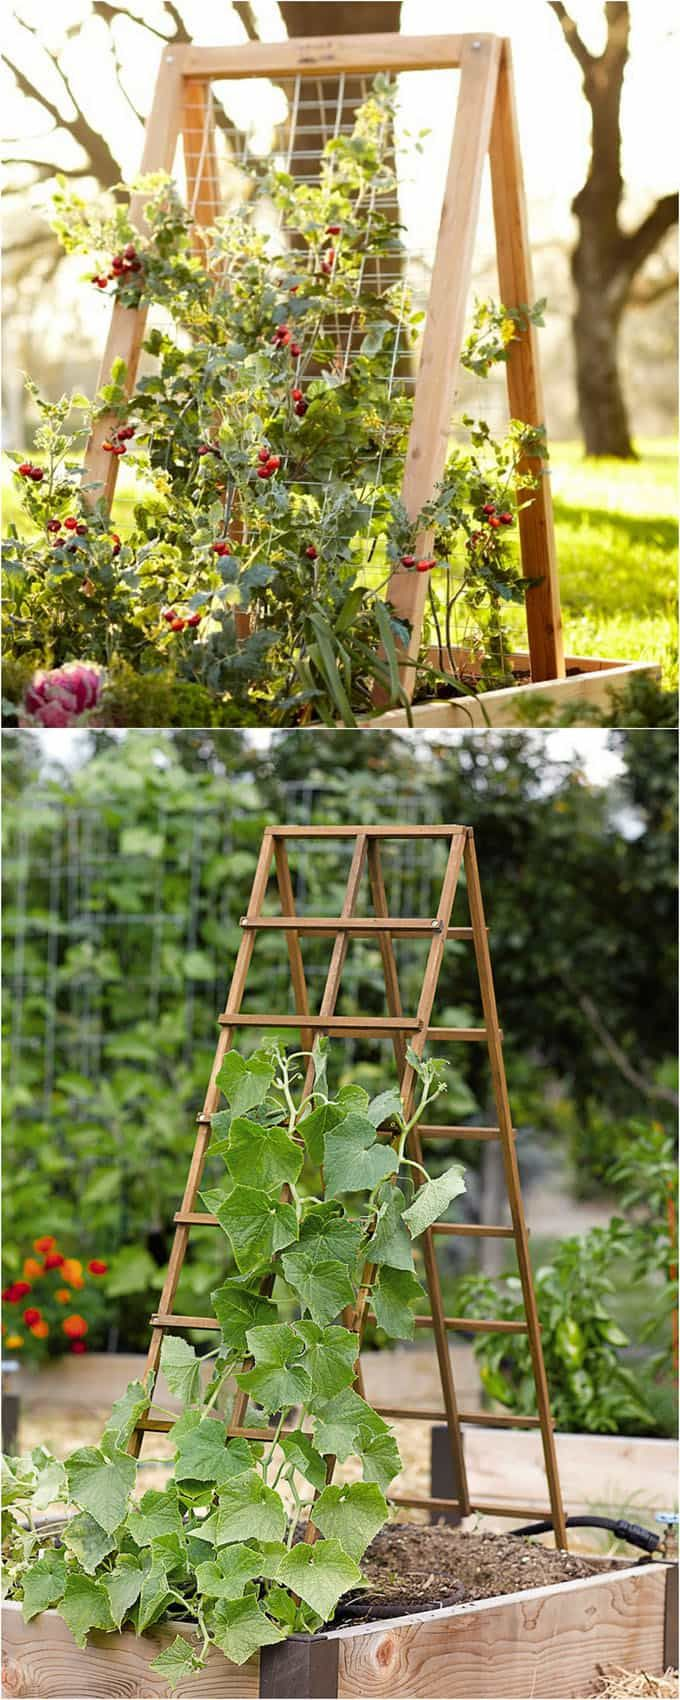 21 Easy DIY Garden Trellis Ideas & Vertical Growing Structures ...